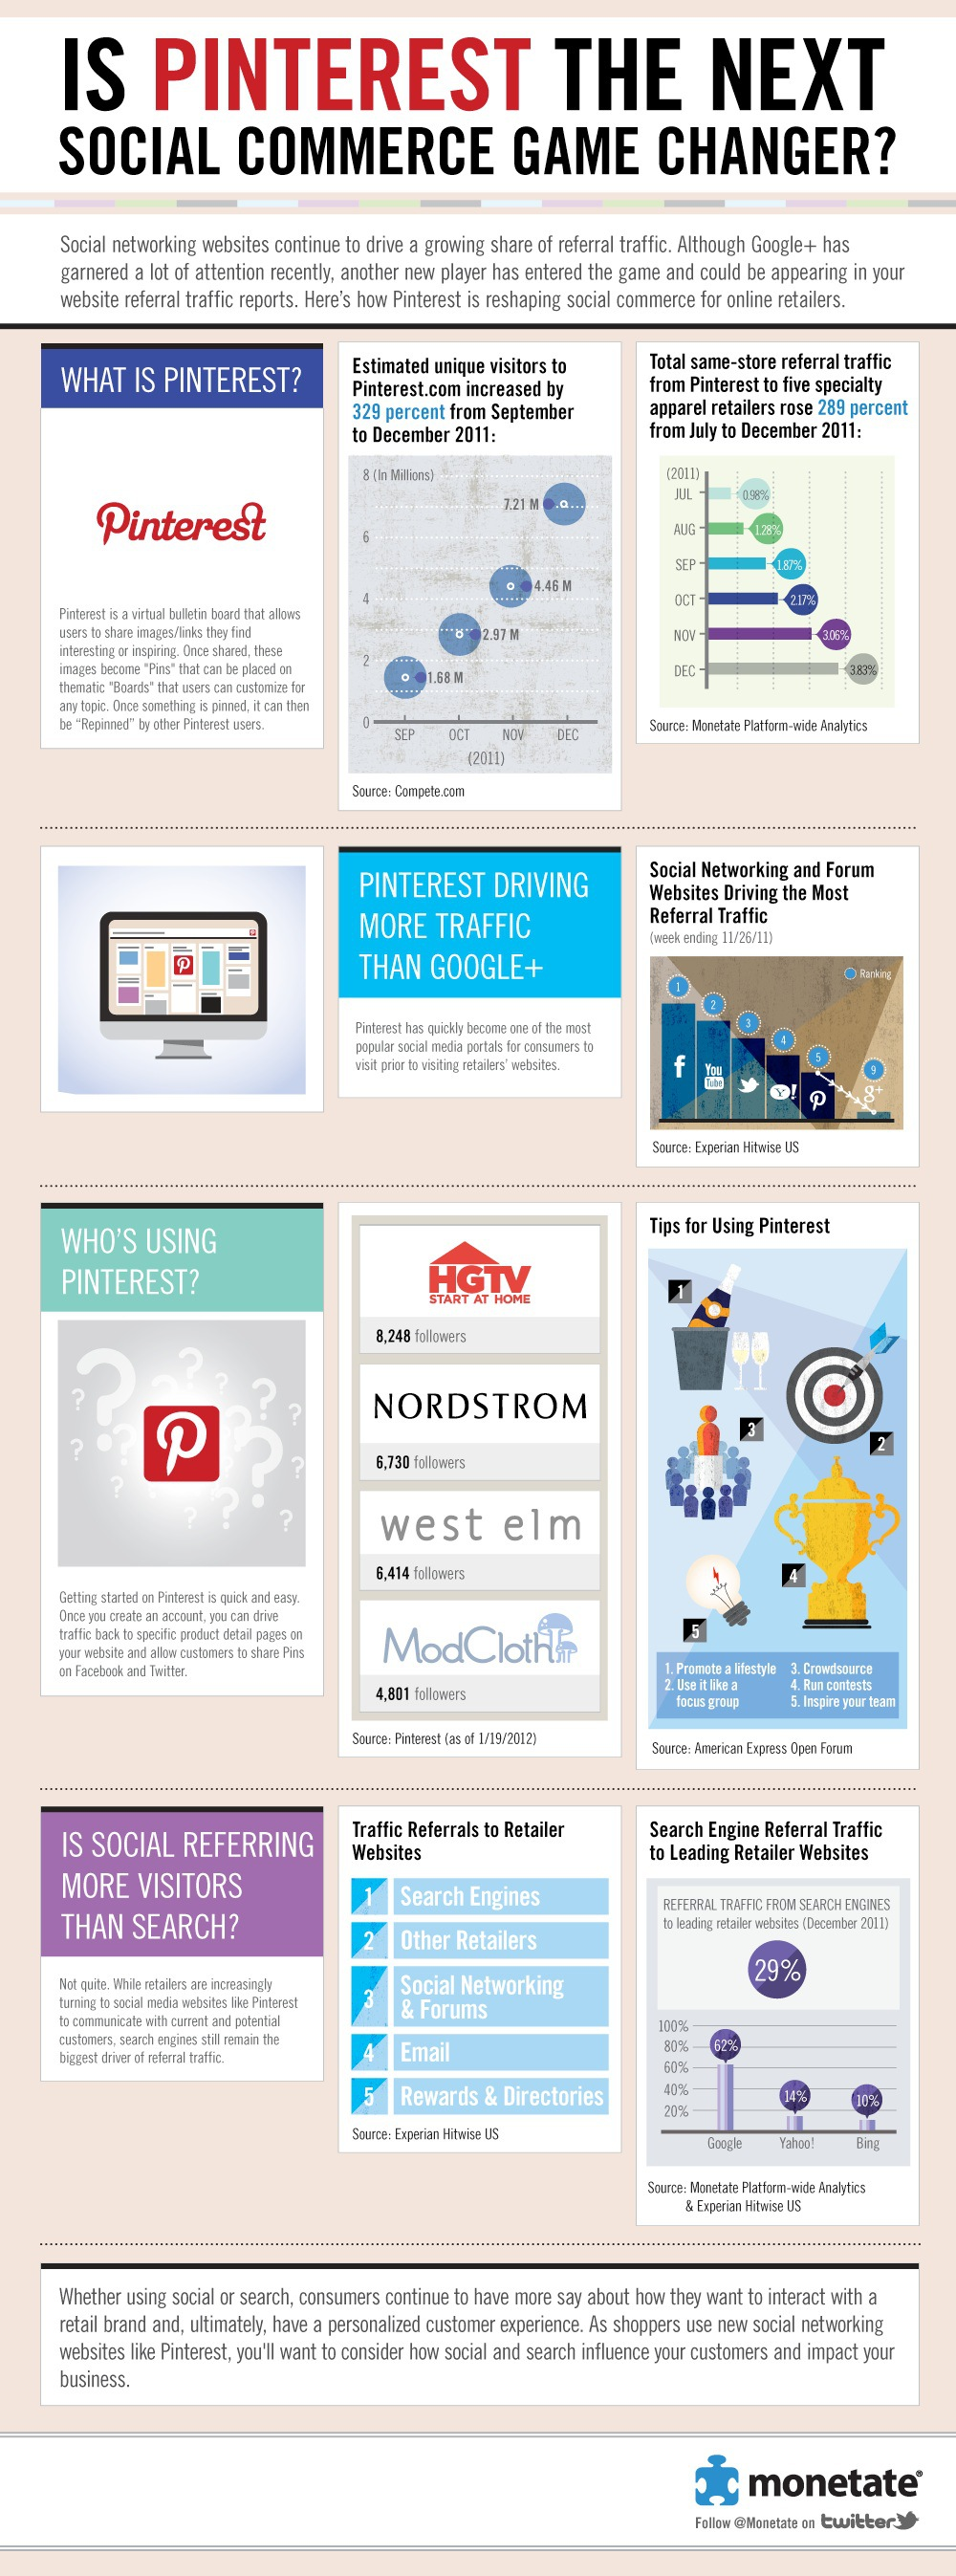 monetate-pinterest-infographic